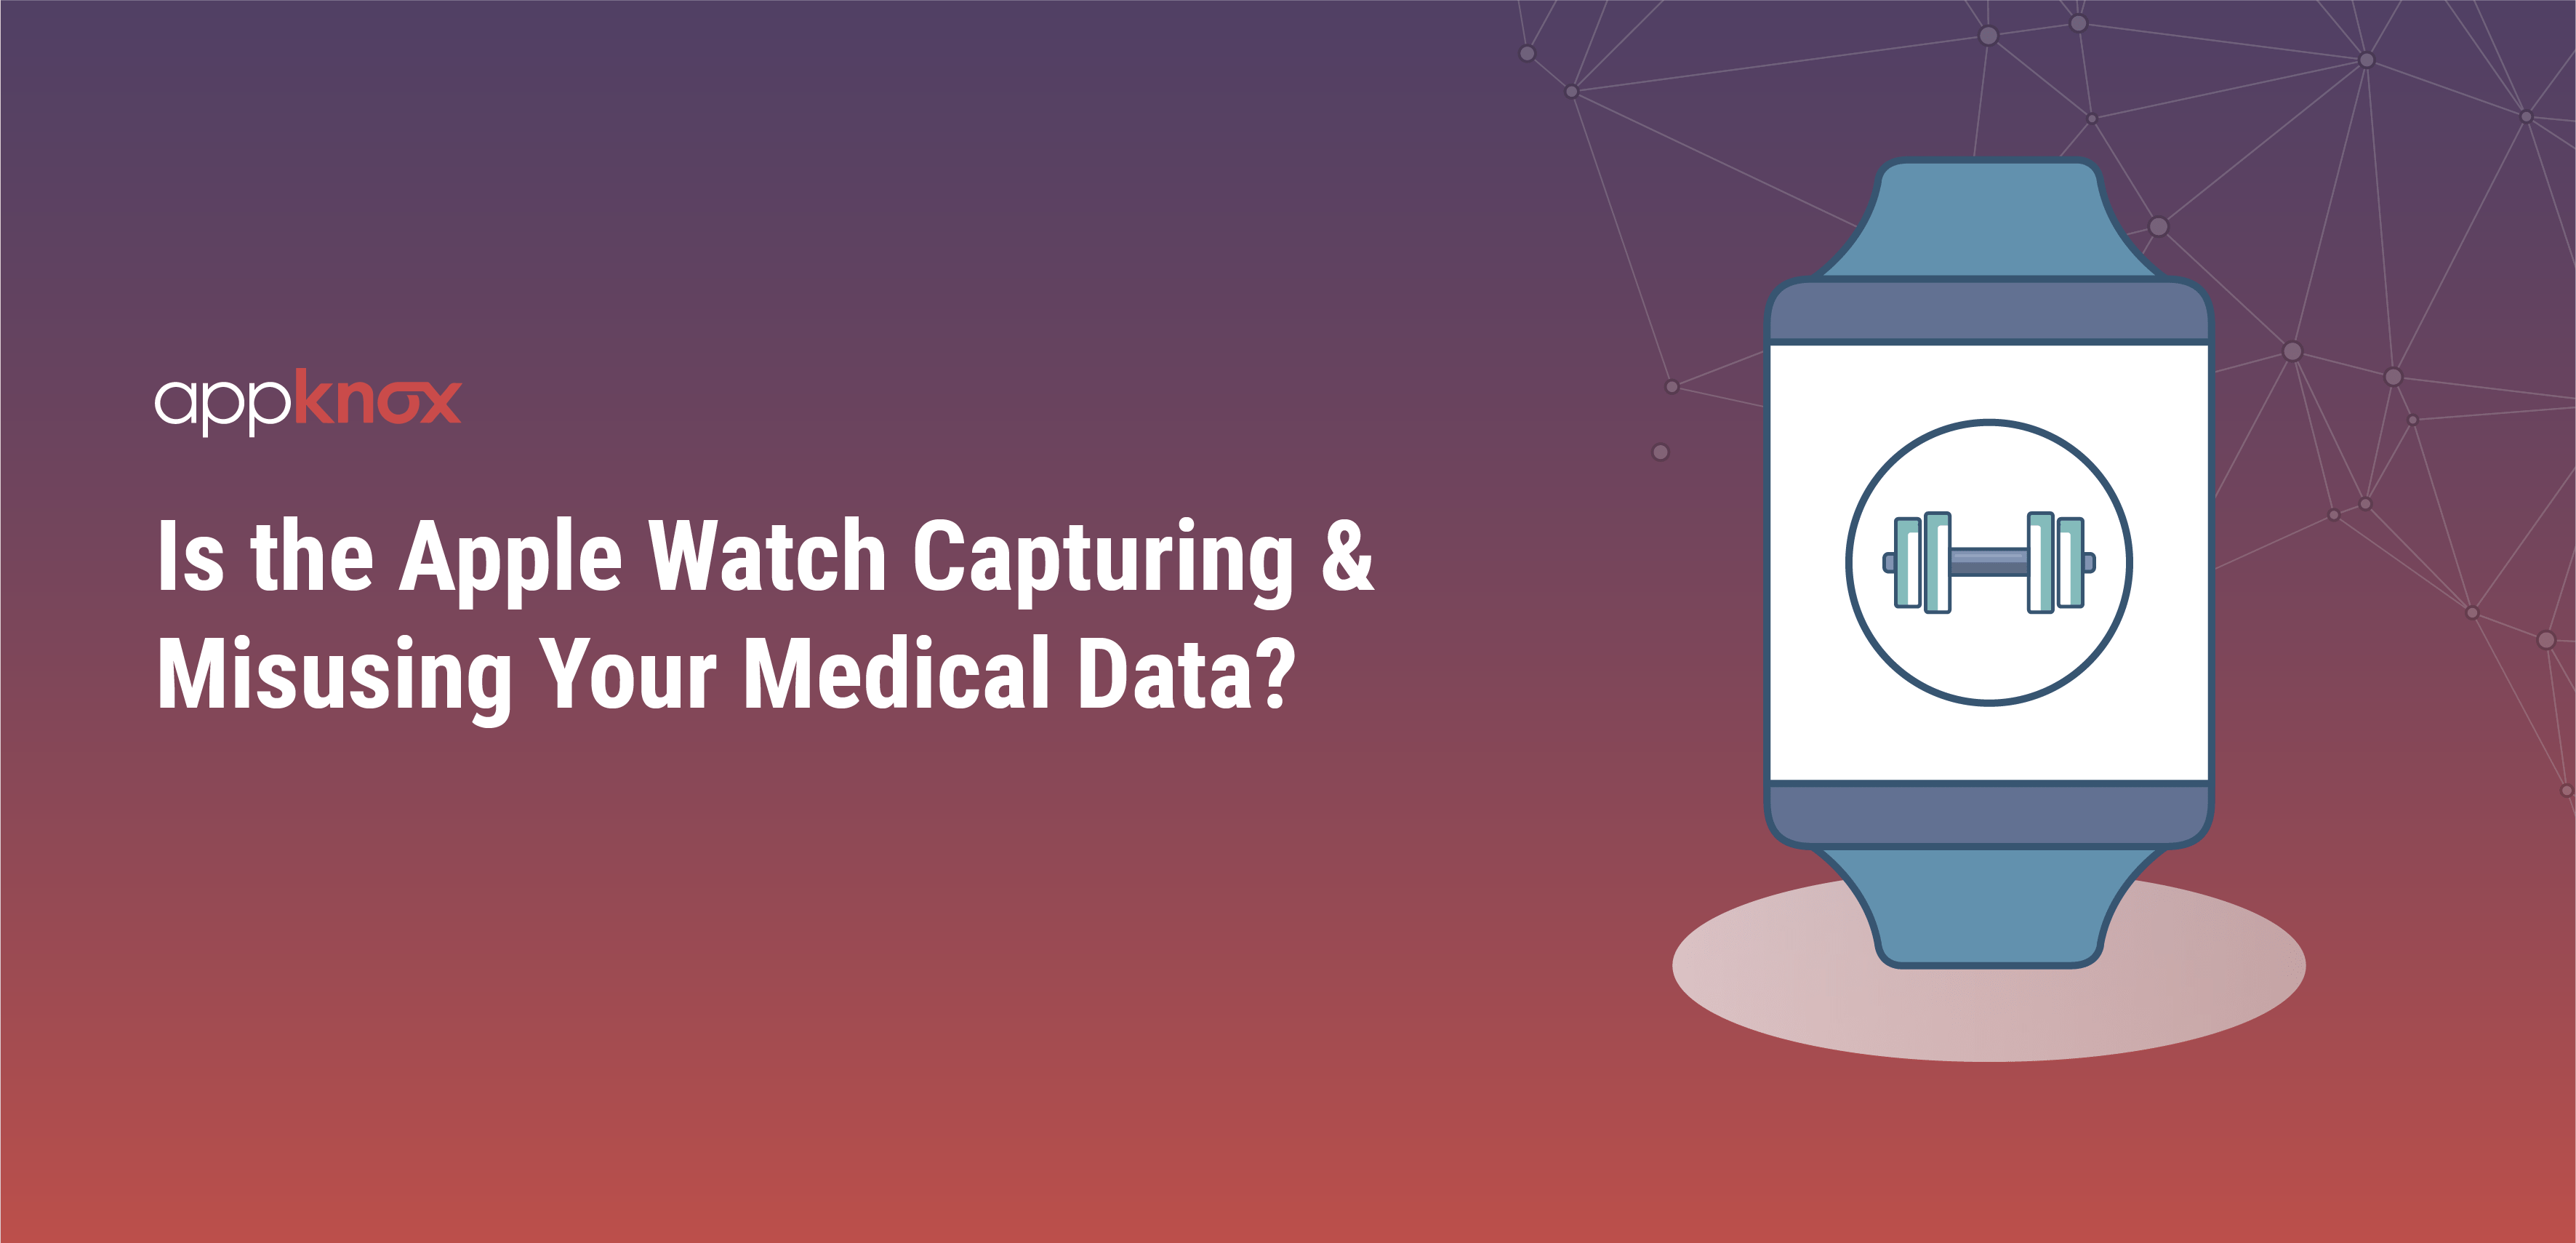 Is the Apple Watch Capturing & Misusing Your Medical Data?